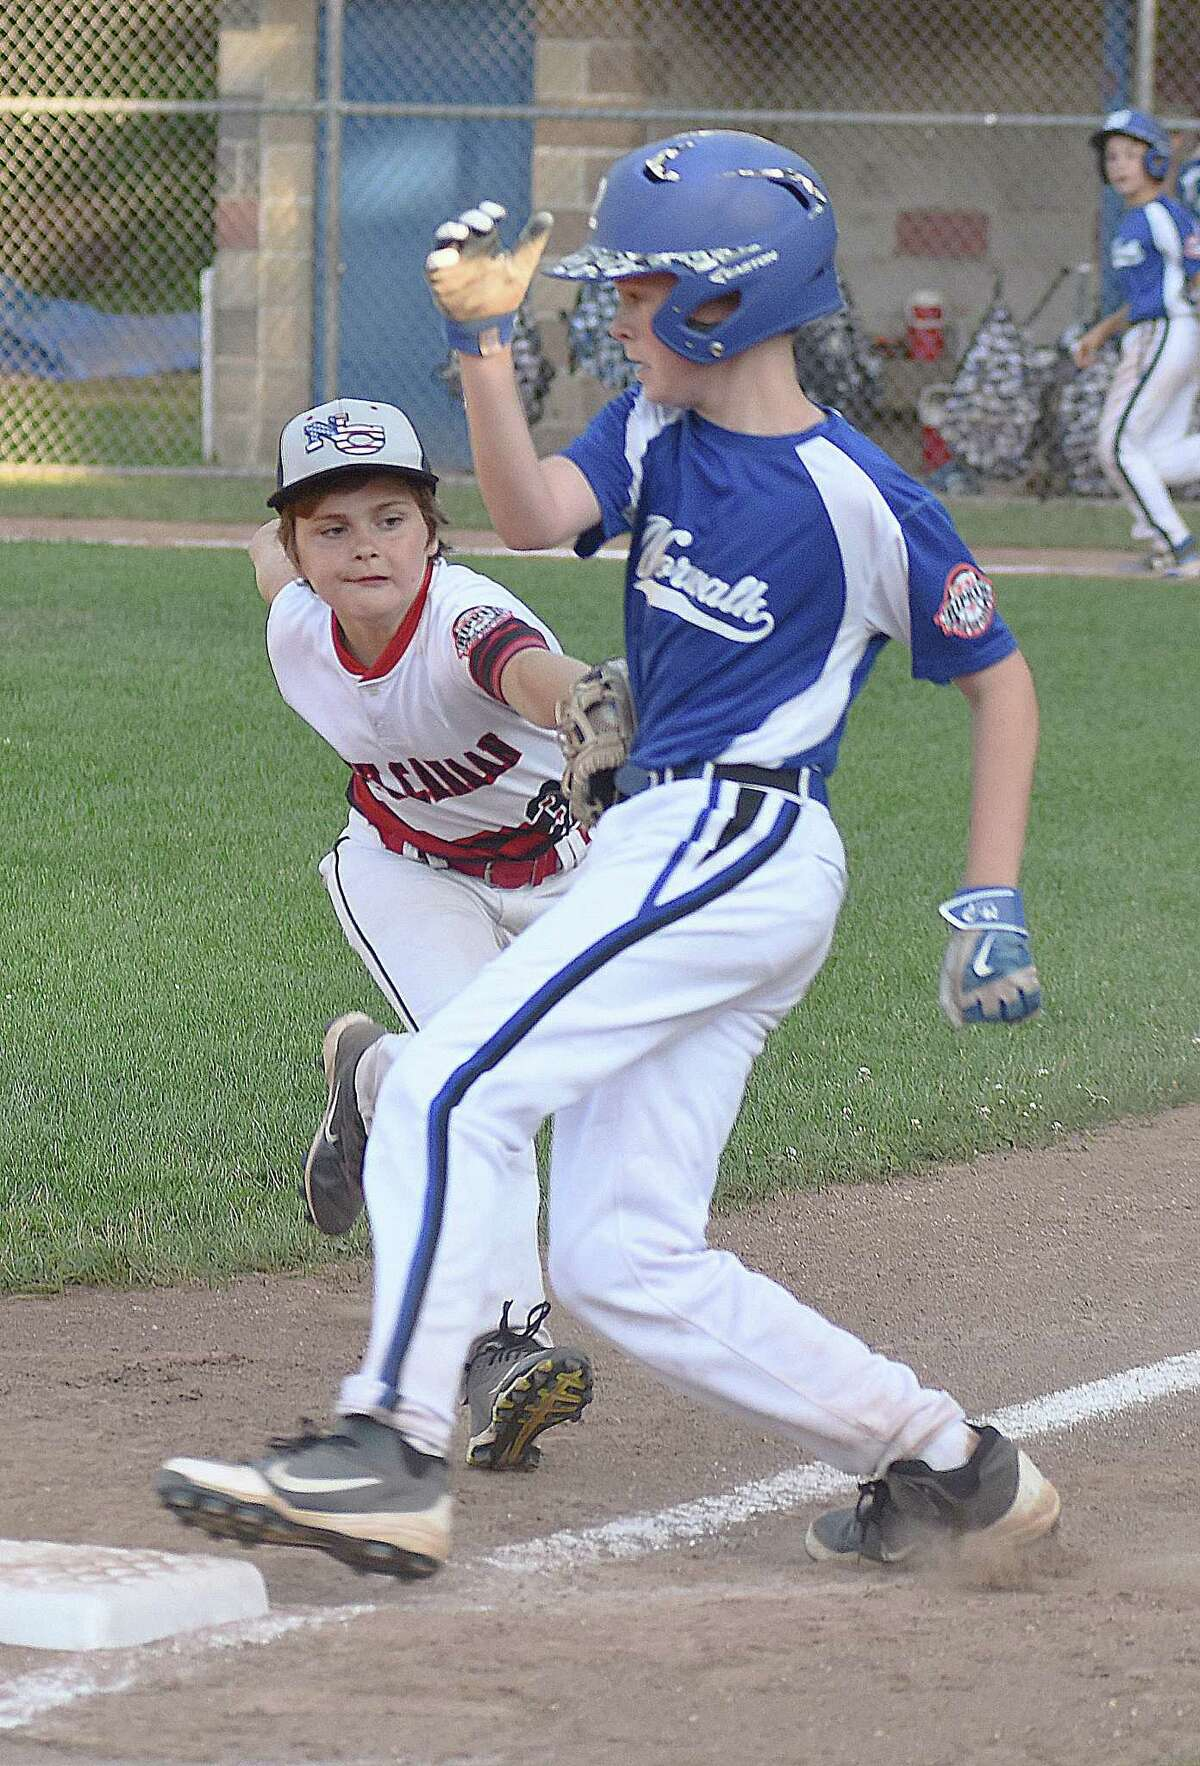 Norwalk's Kyle Close, right, looks to get back to the bag as New Canaan third baseman Salty Balkun makes the tag during Wednesday's District 1 Cal Ripken 11-year-old All-Stars championship game at Tim Devine Field in Norwalk. Close was called safe on the play and Norwalk went on to win 10-0.